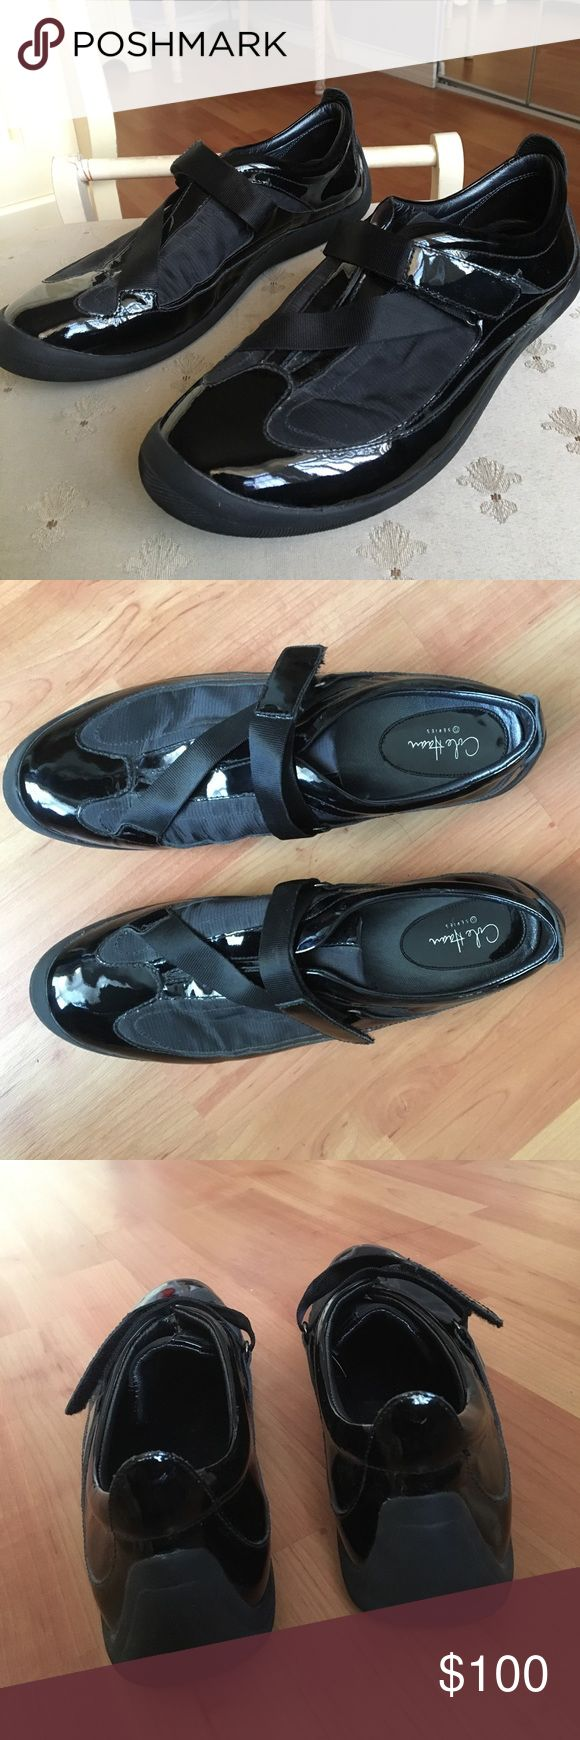 Cole Haan shoes Black High gloss Cole Haan dress shoes with Velcro strap. Used only on 1 occasion. No scuffs or scratches on black shiny areas. Looks brand new. Cole Haan Shoes Sneakers